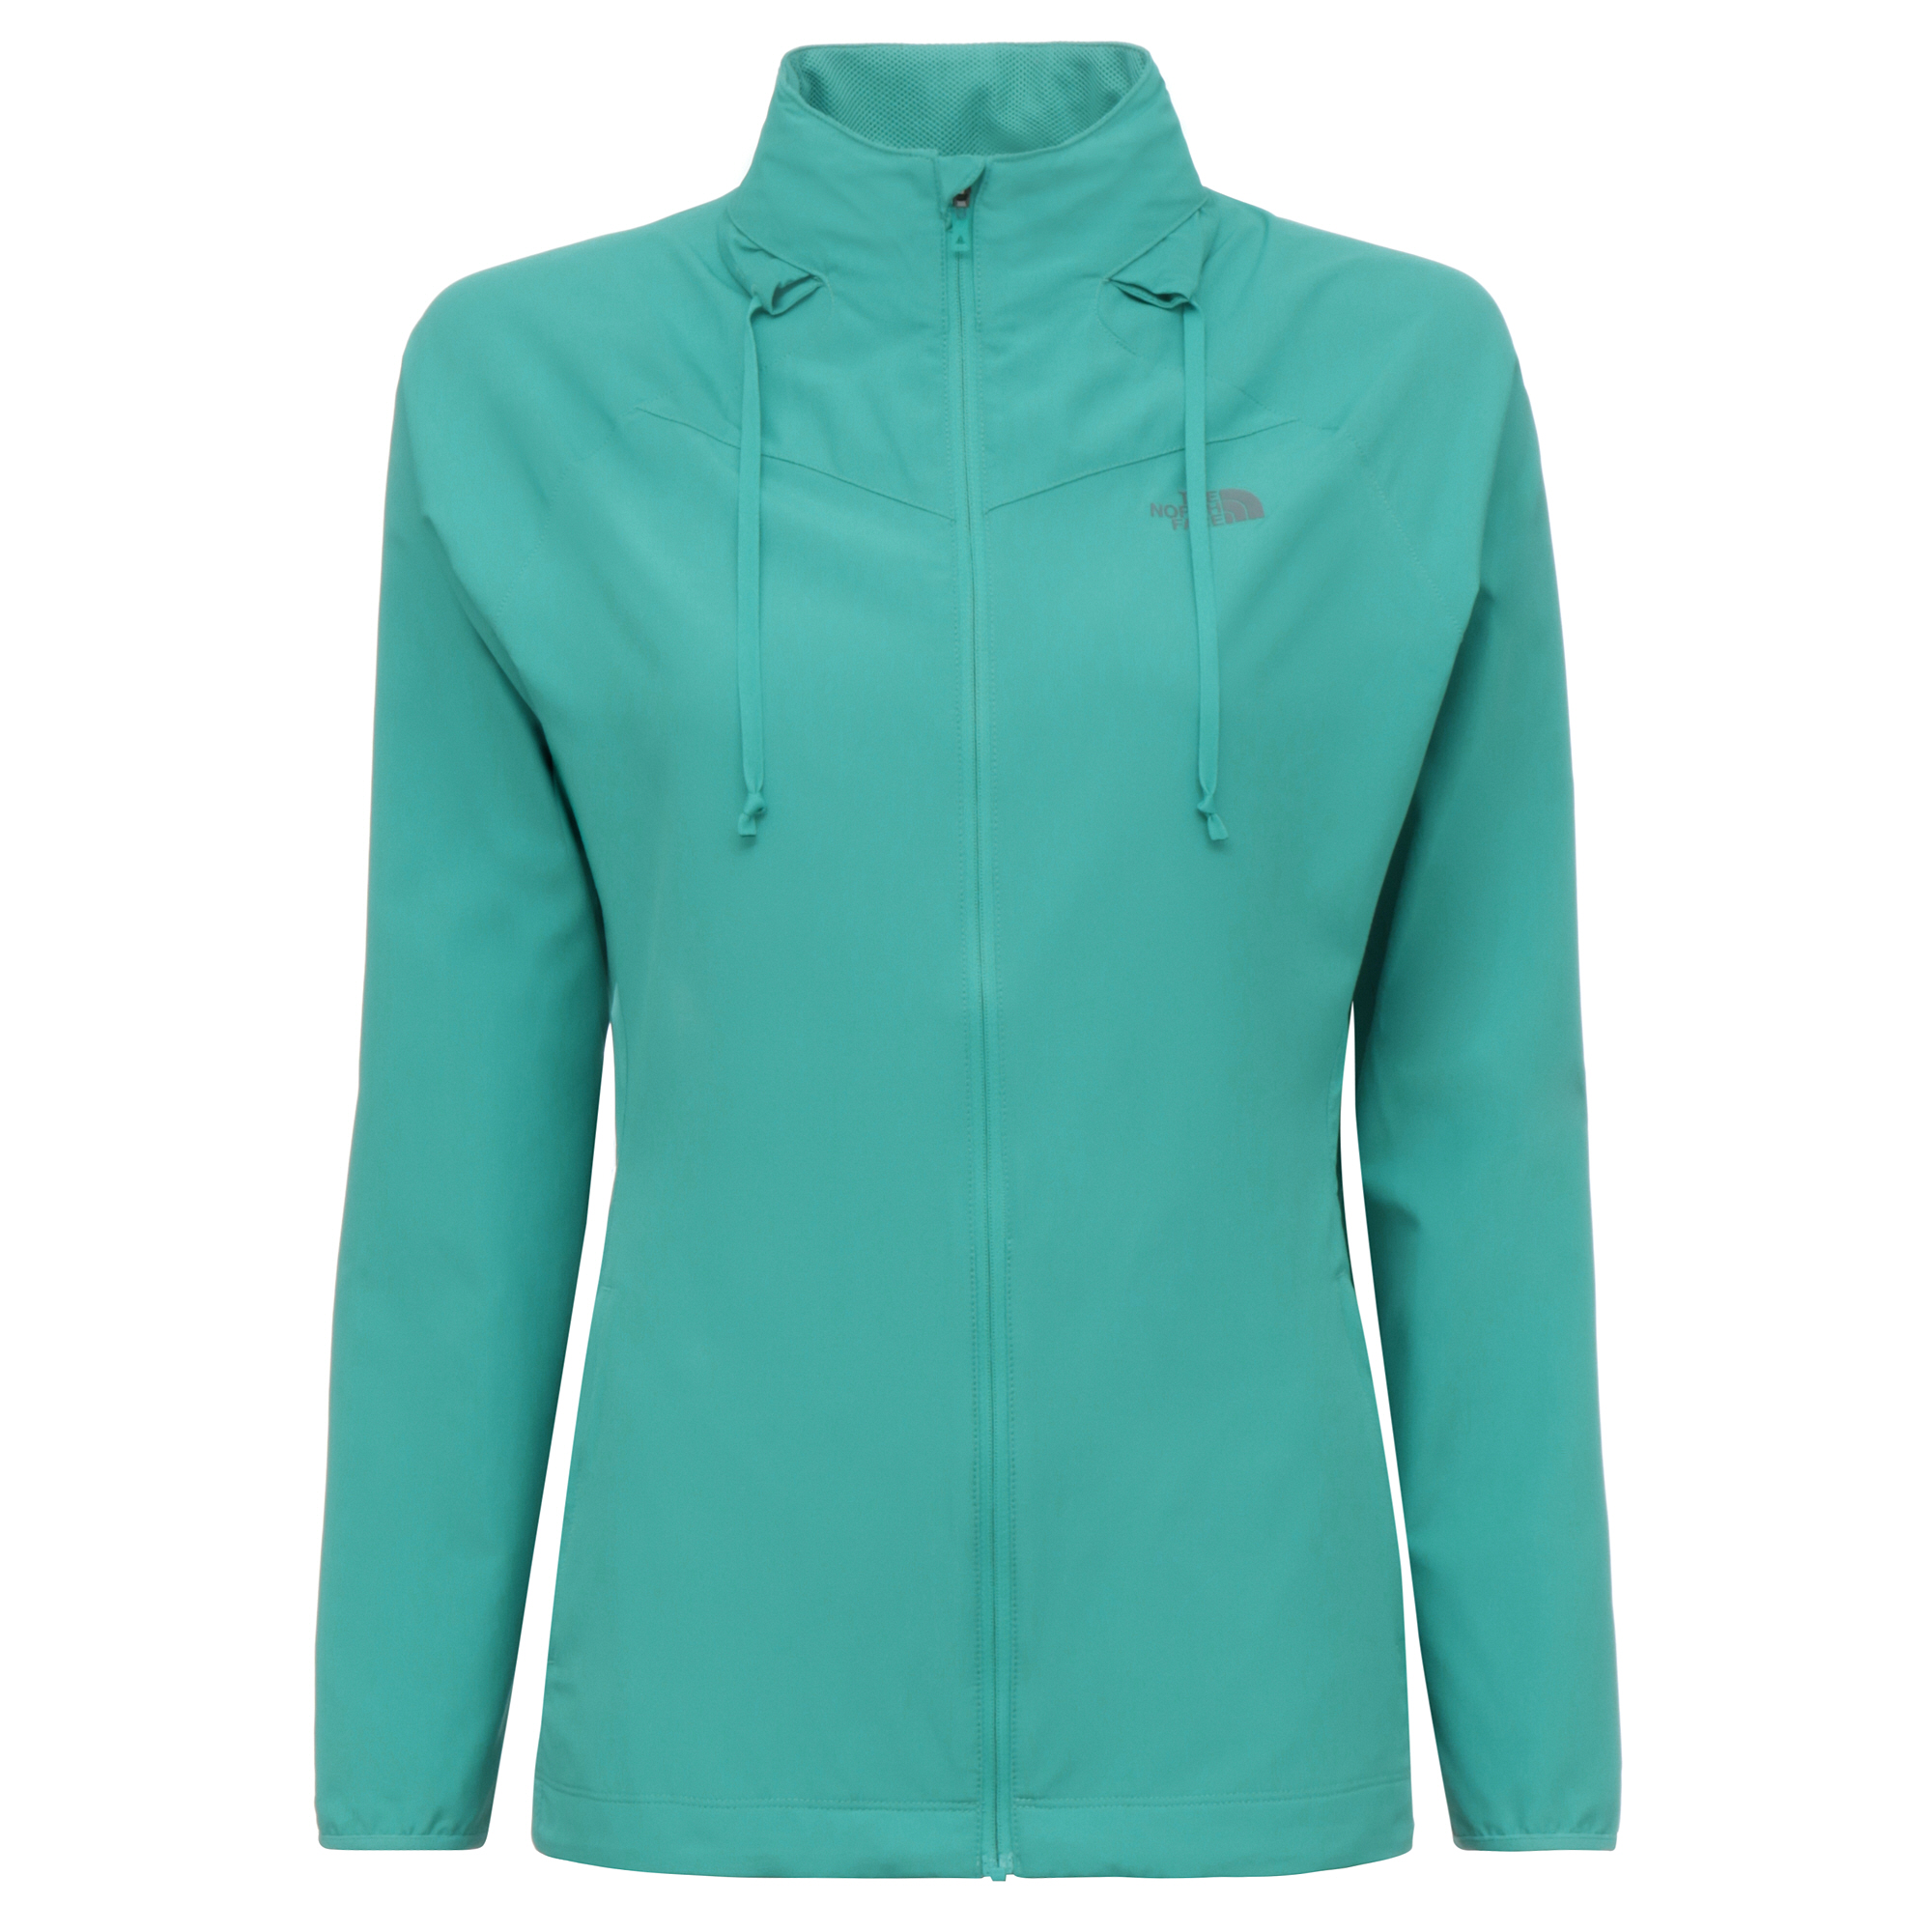 Wiggle North France Women's Vestes Jacket Torendo The Face Cq6wpY8